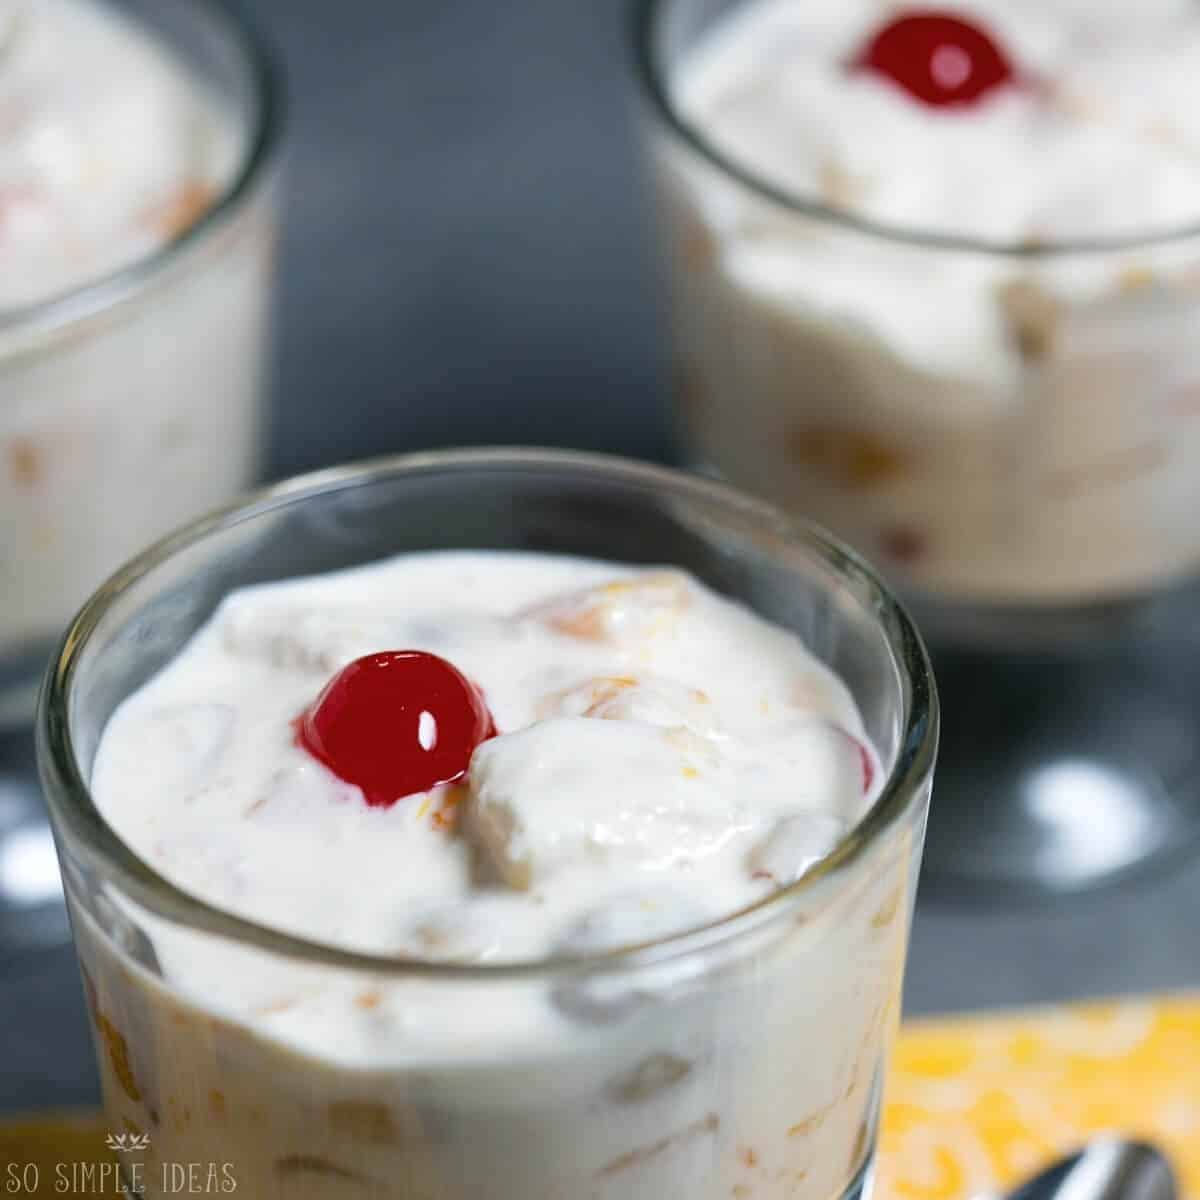 filipino fruit salad featured image